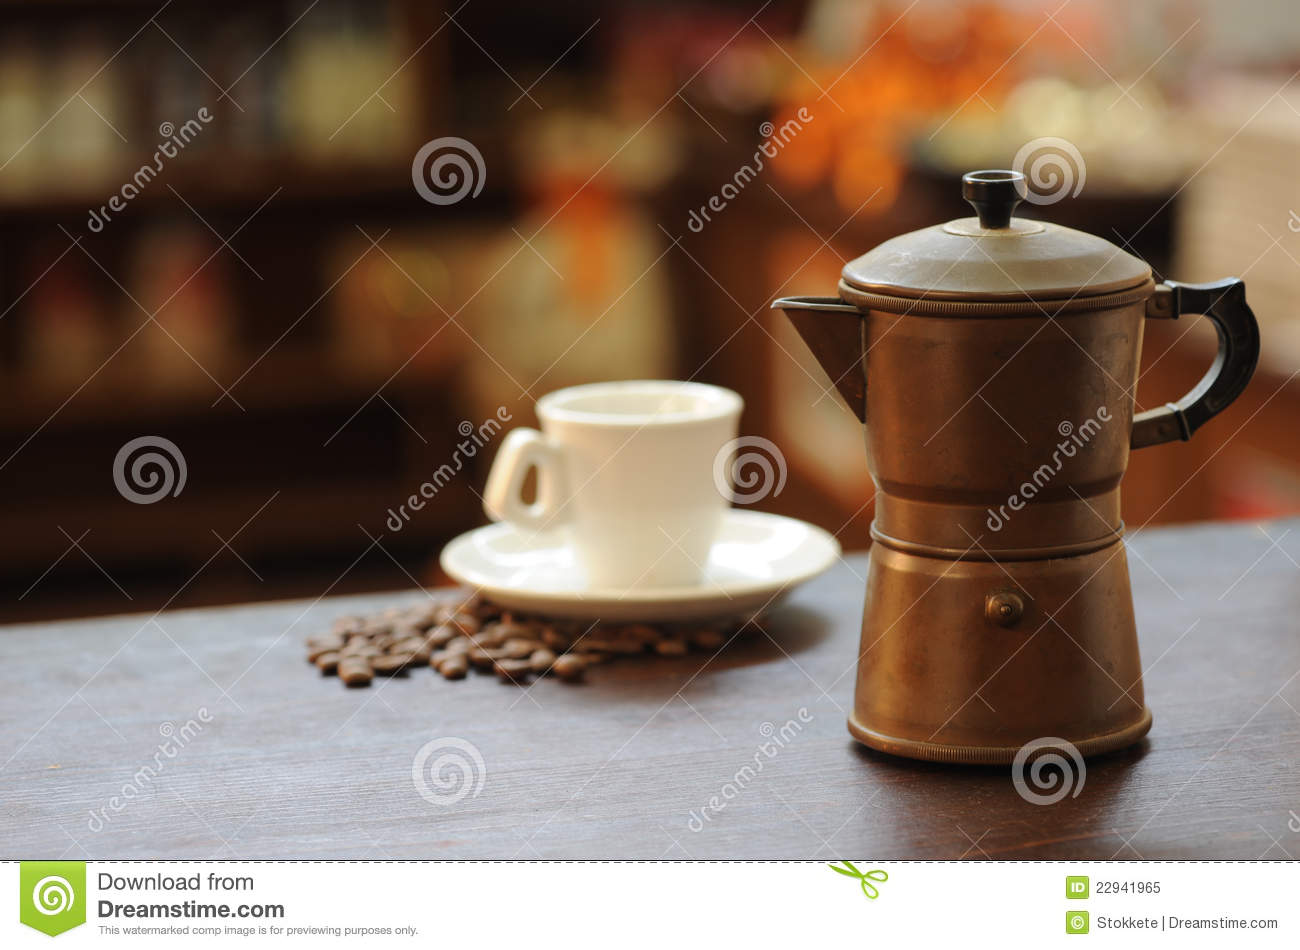 Old Time Coffee Maker : Old Coffee Maker Royalty Free Stock Photo - Image: 22941965